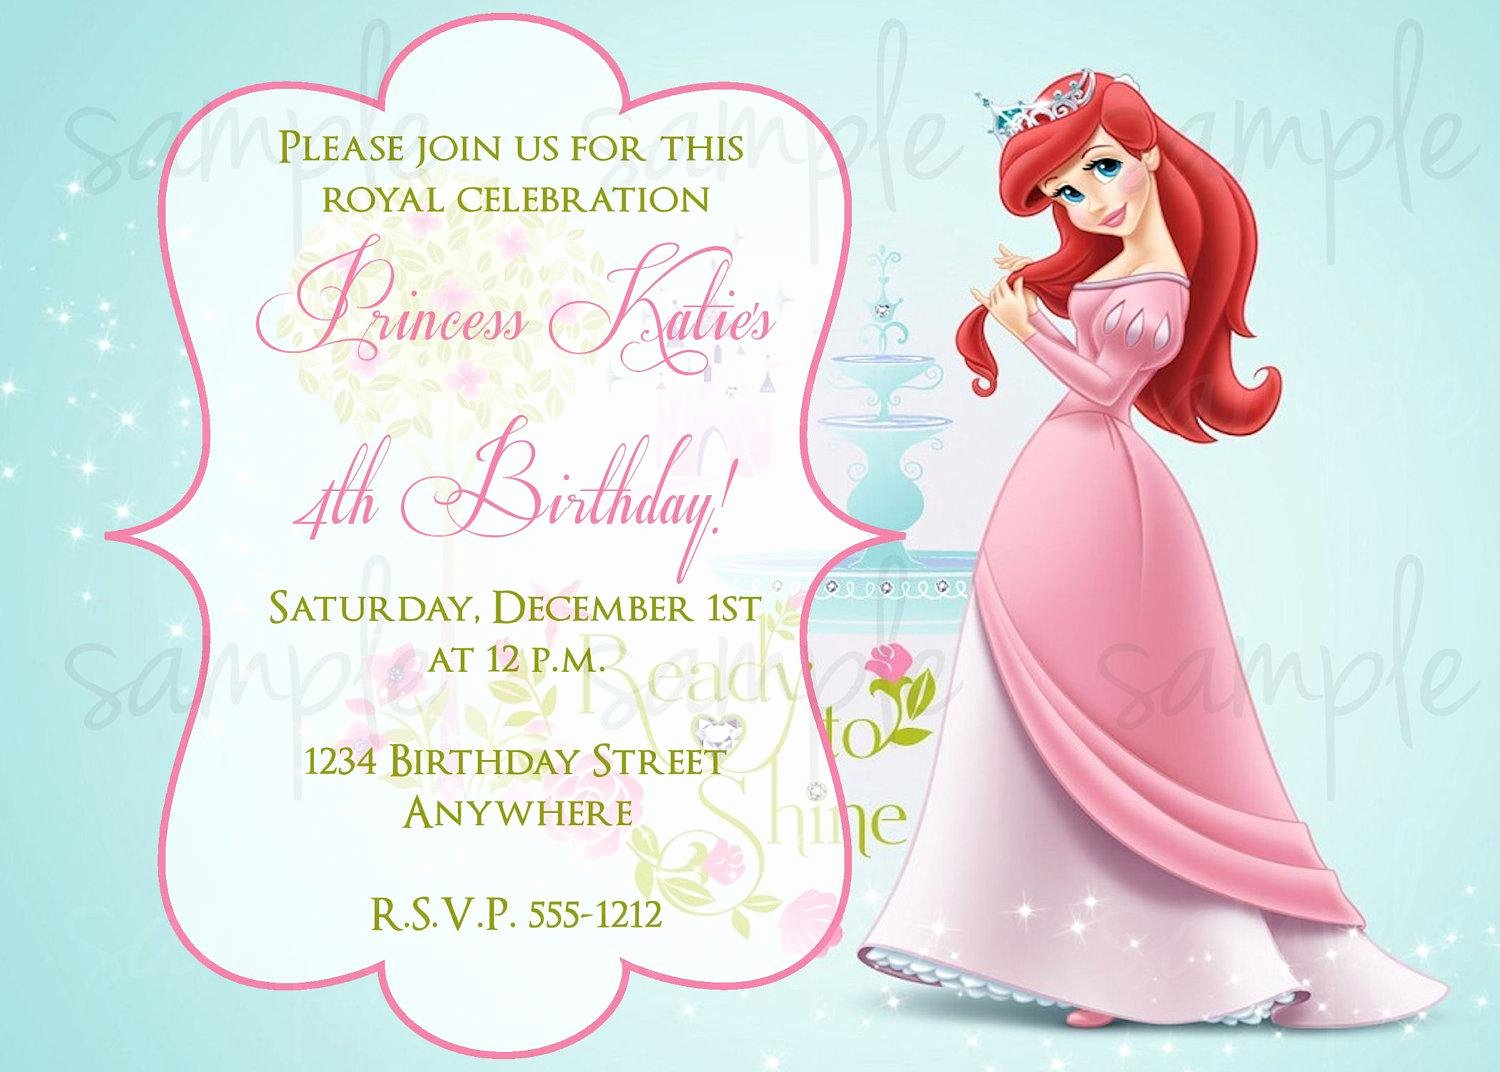 Princess Party Invitation Template Luxury Princess Birthday Party Invitation Wording